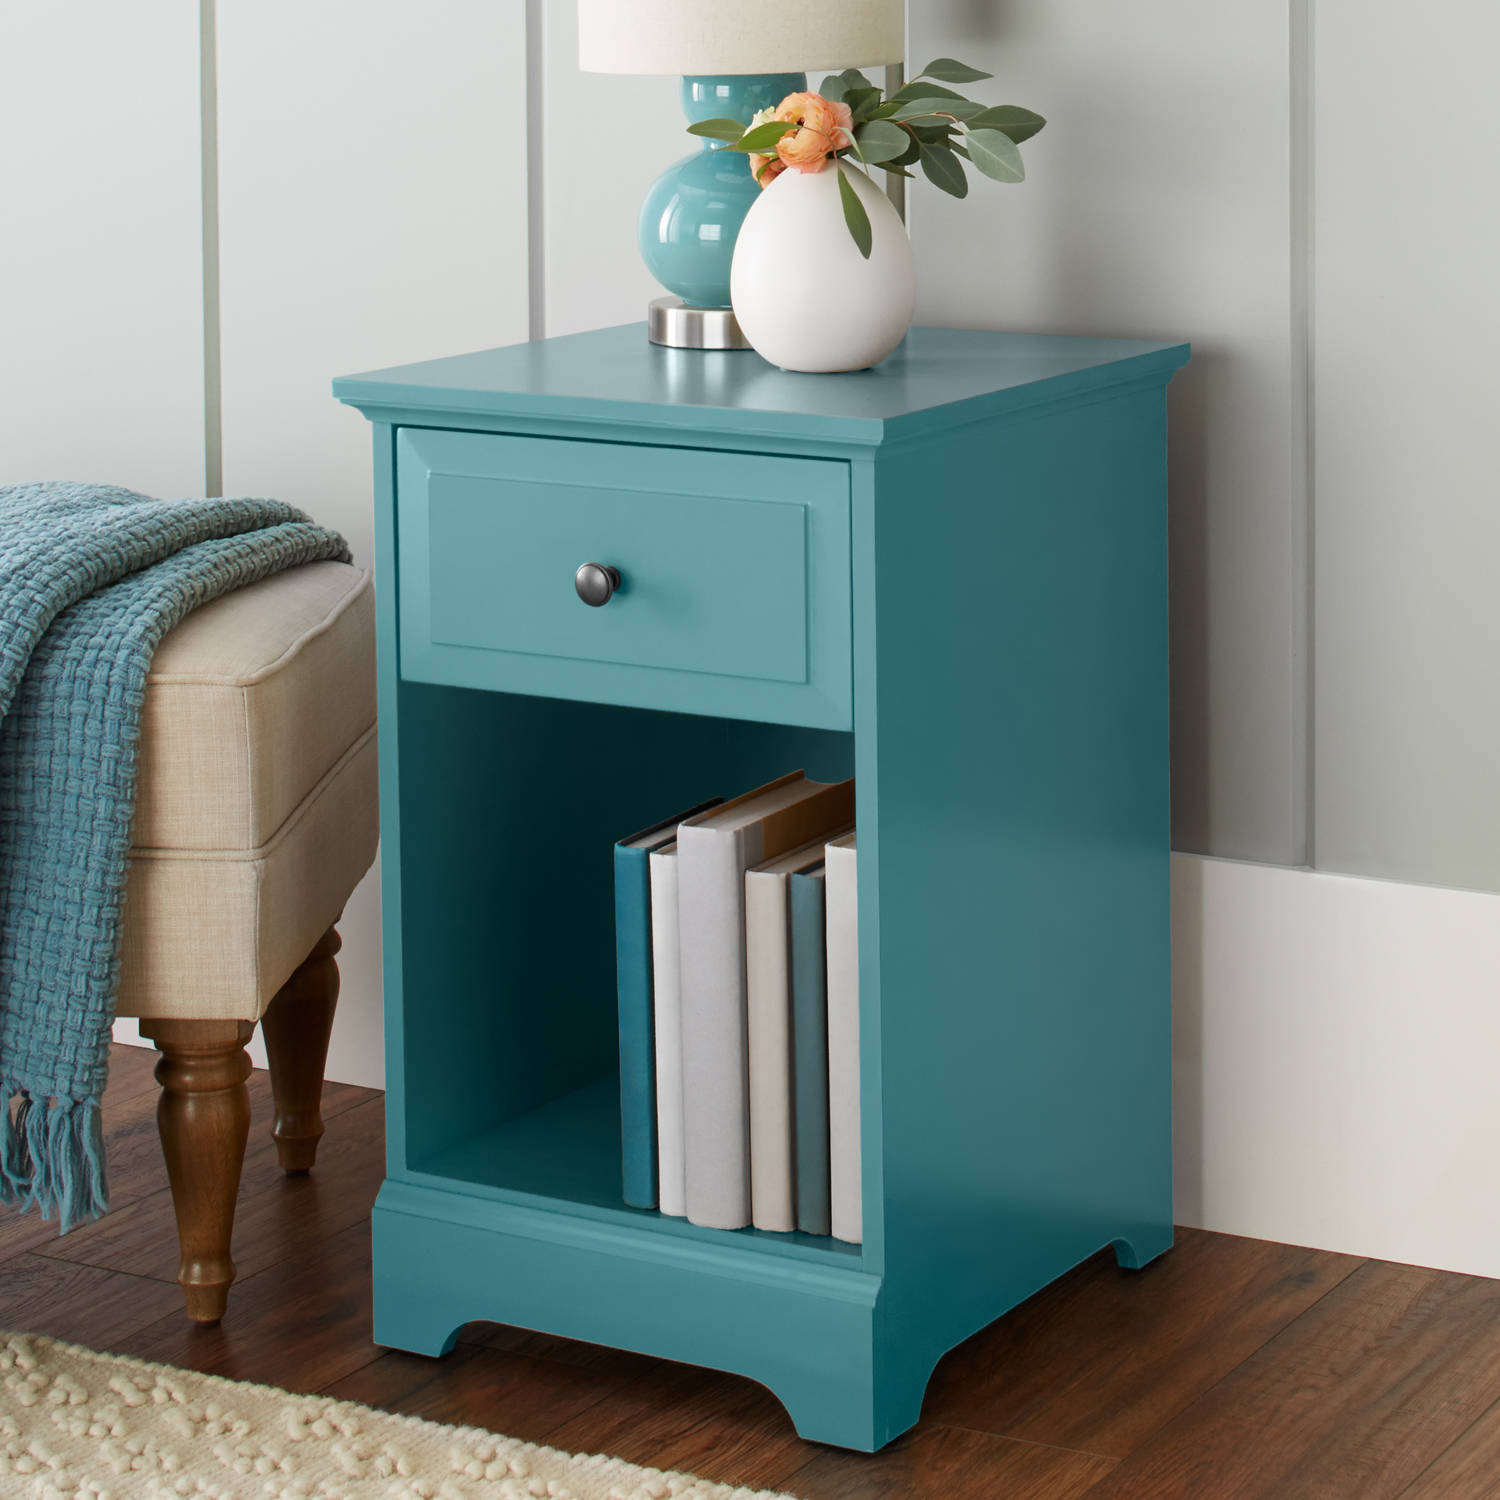 Better Homes & Gardens Savannah Accent Table, Teal by BDDMI